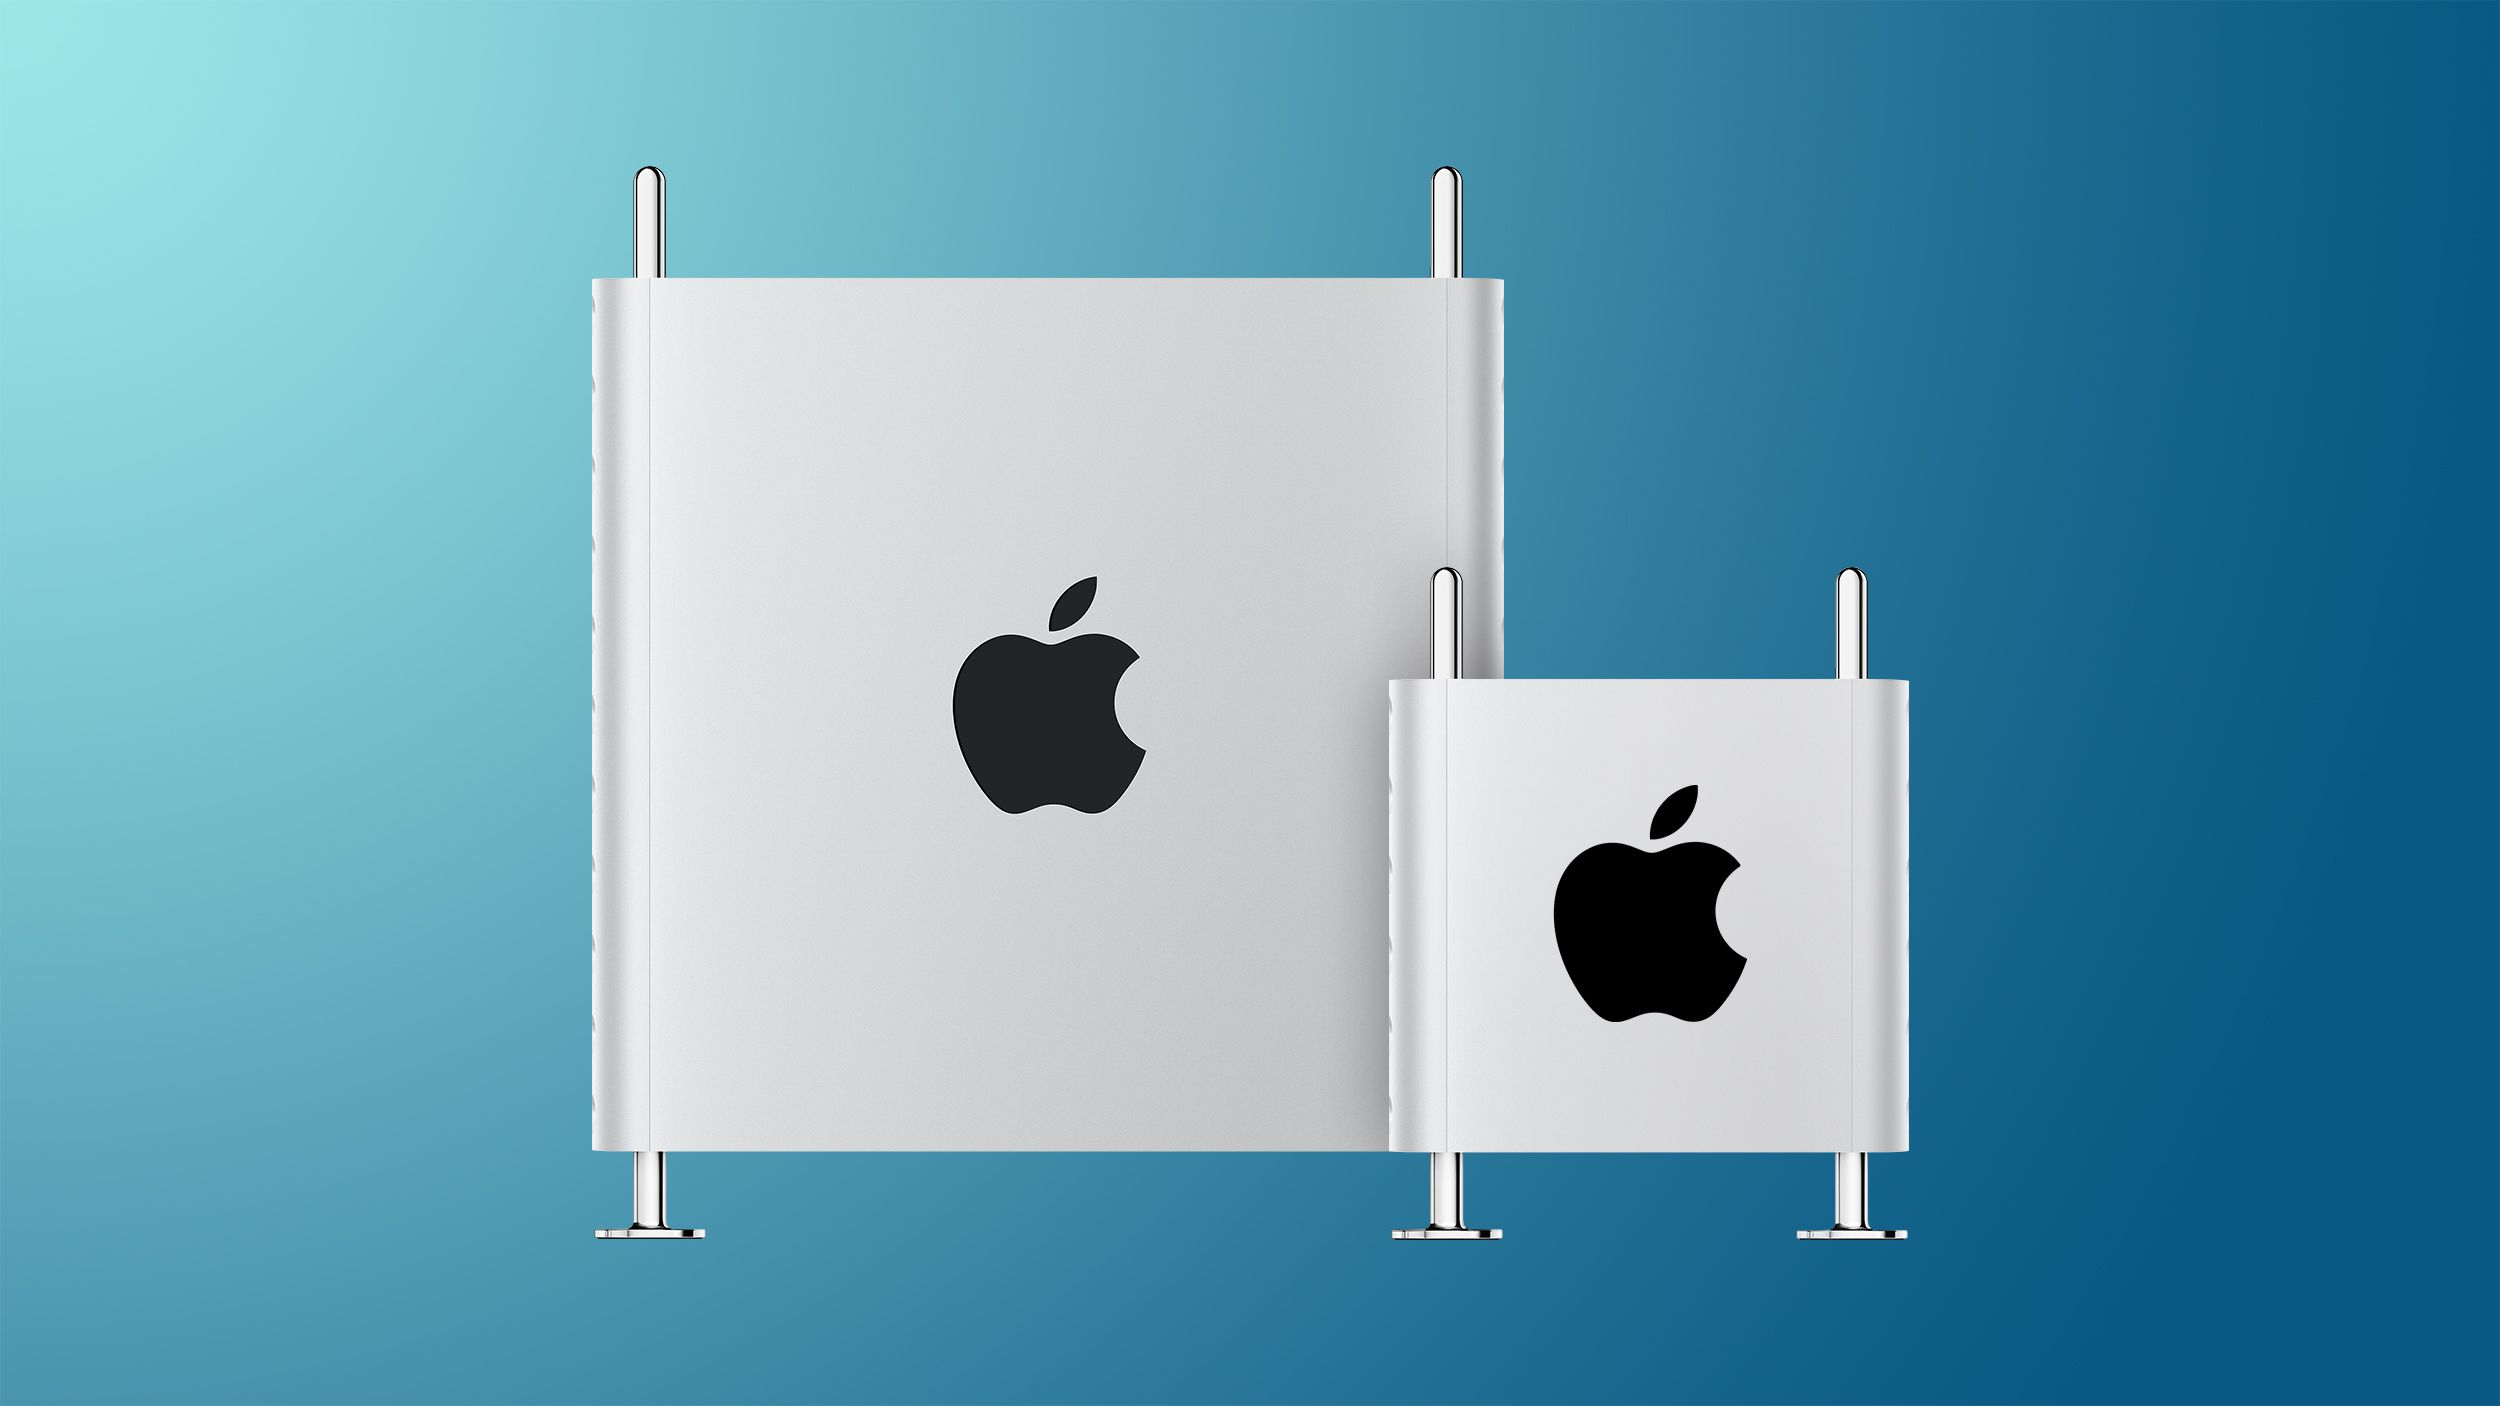 Apple is working on two new Mac Pro computers, one of which will remind us of the Power Mac G4 Cube